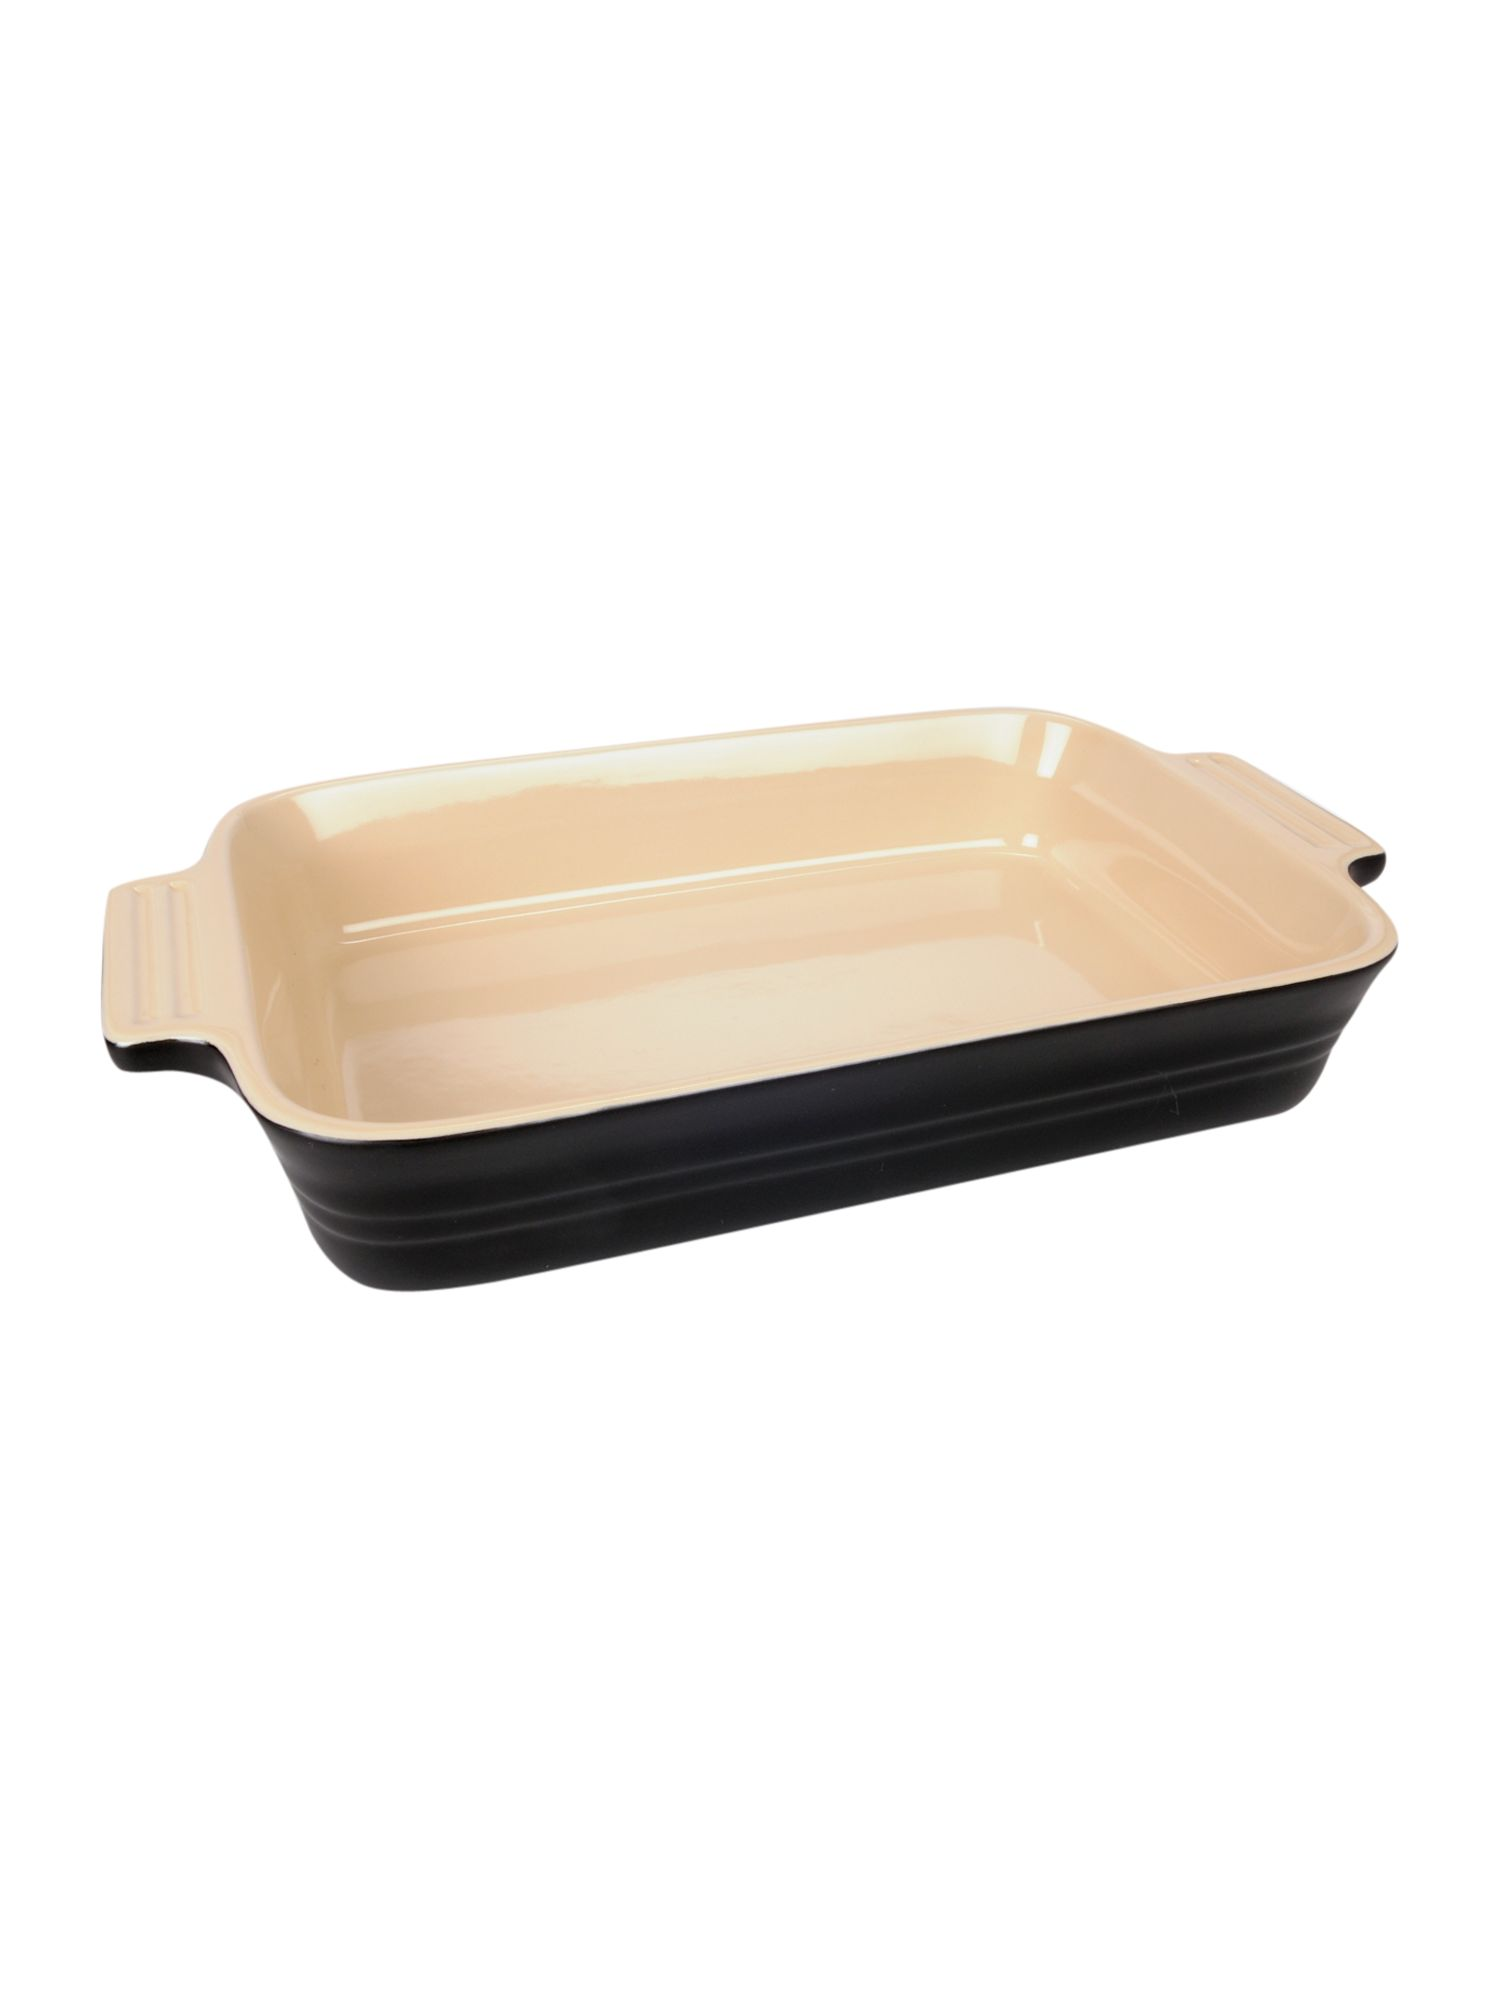 26cm satin black rectangular dish